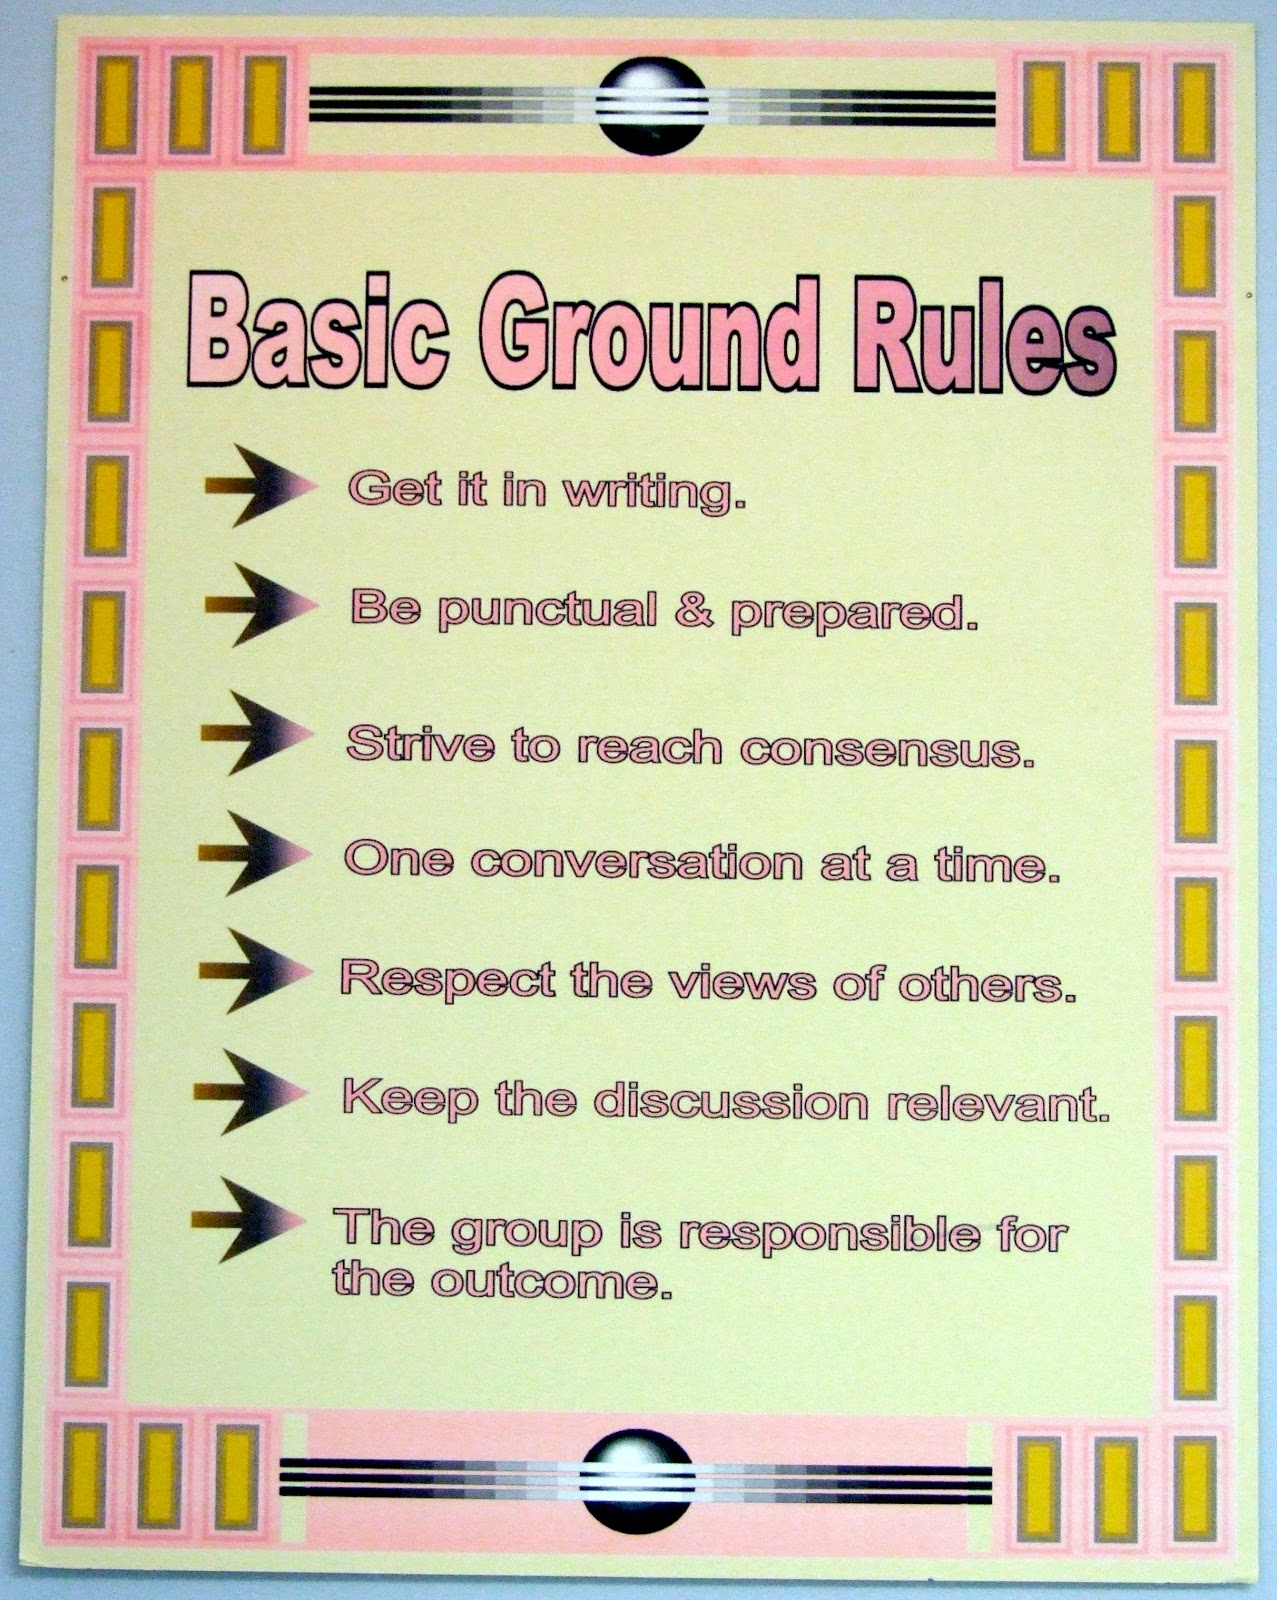 Claes Place Week 13 Basic Ground Rules Interiors Inside Ideas Interiors design about Everything [magnanprojects.com]